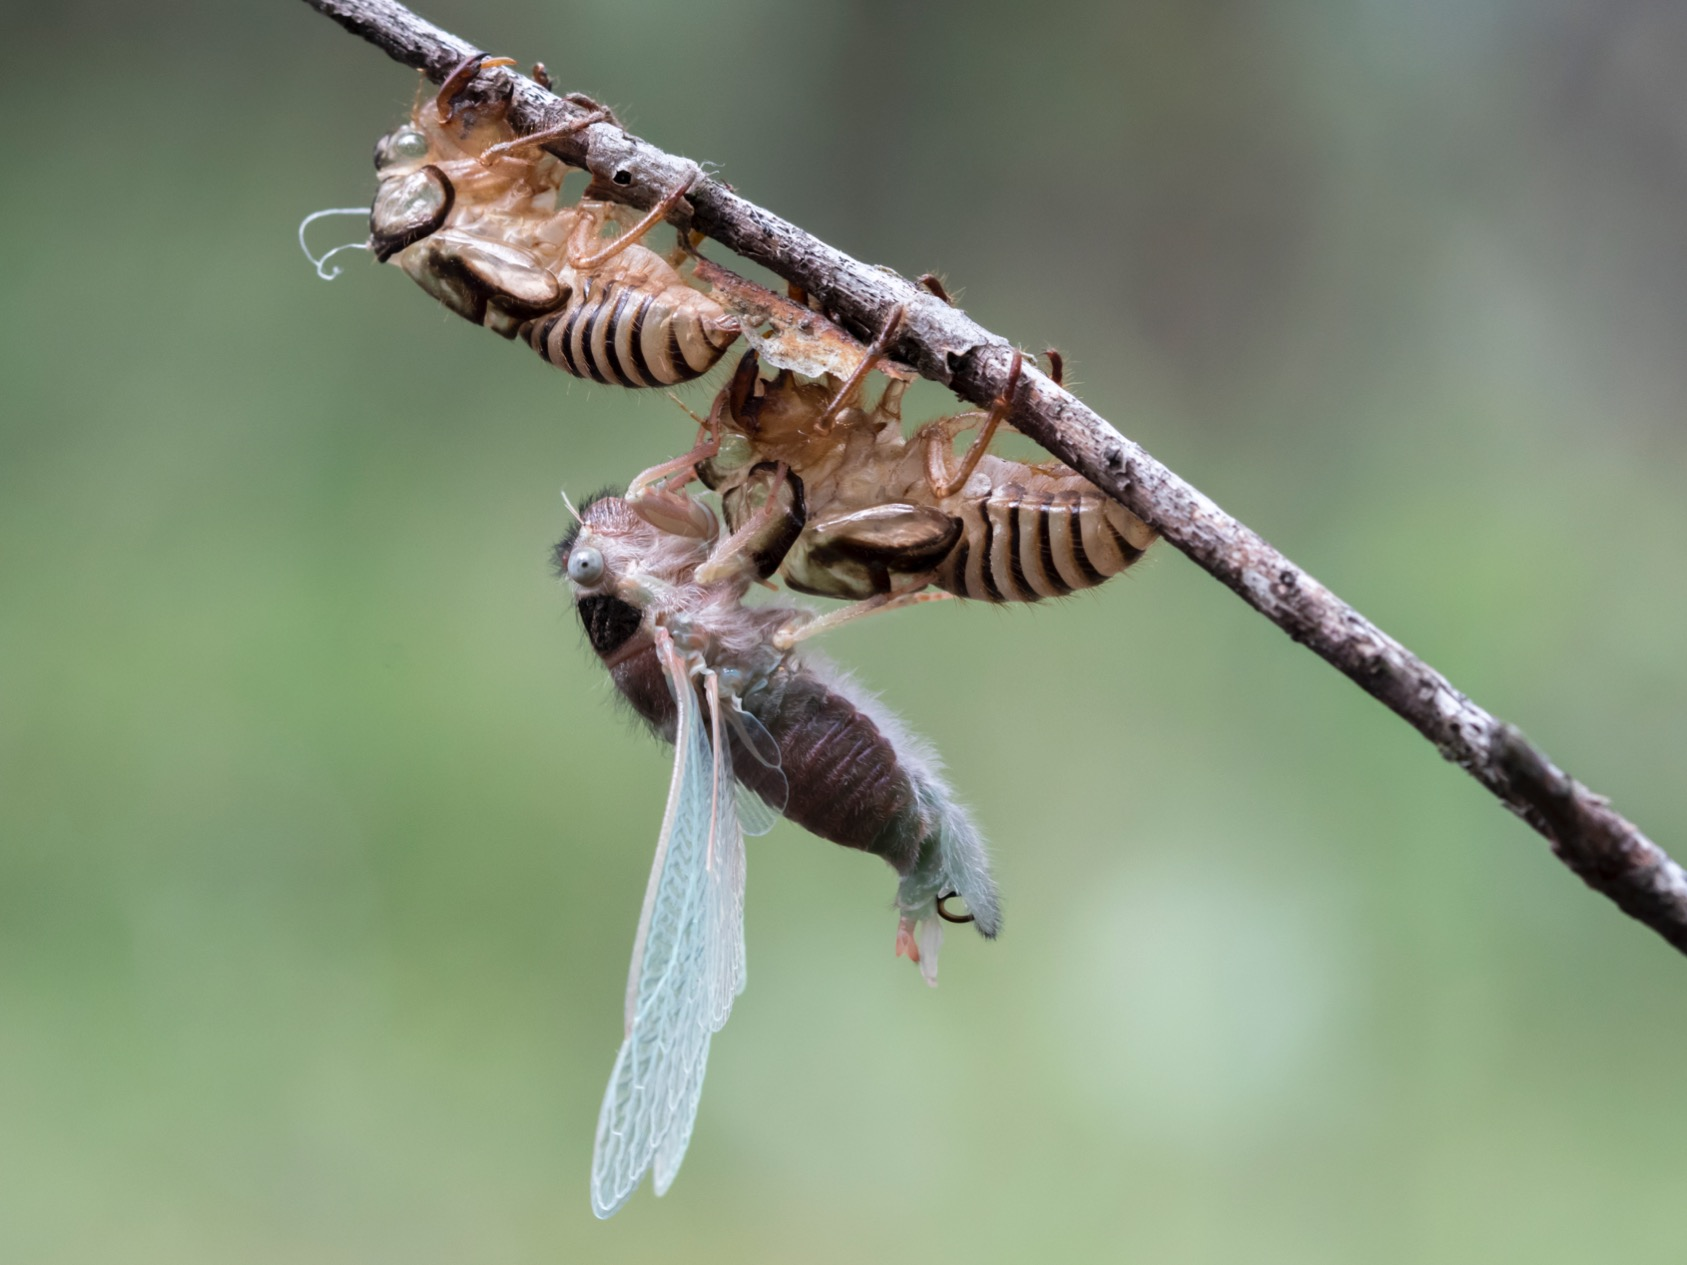 Cicada expanding its wings